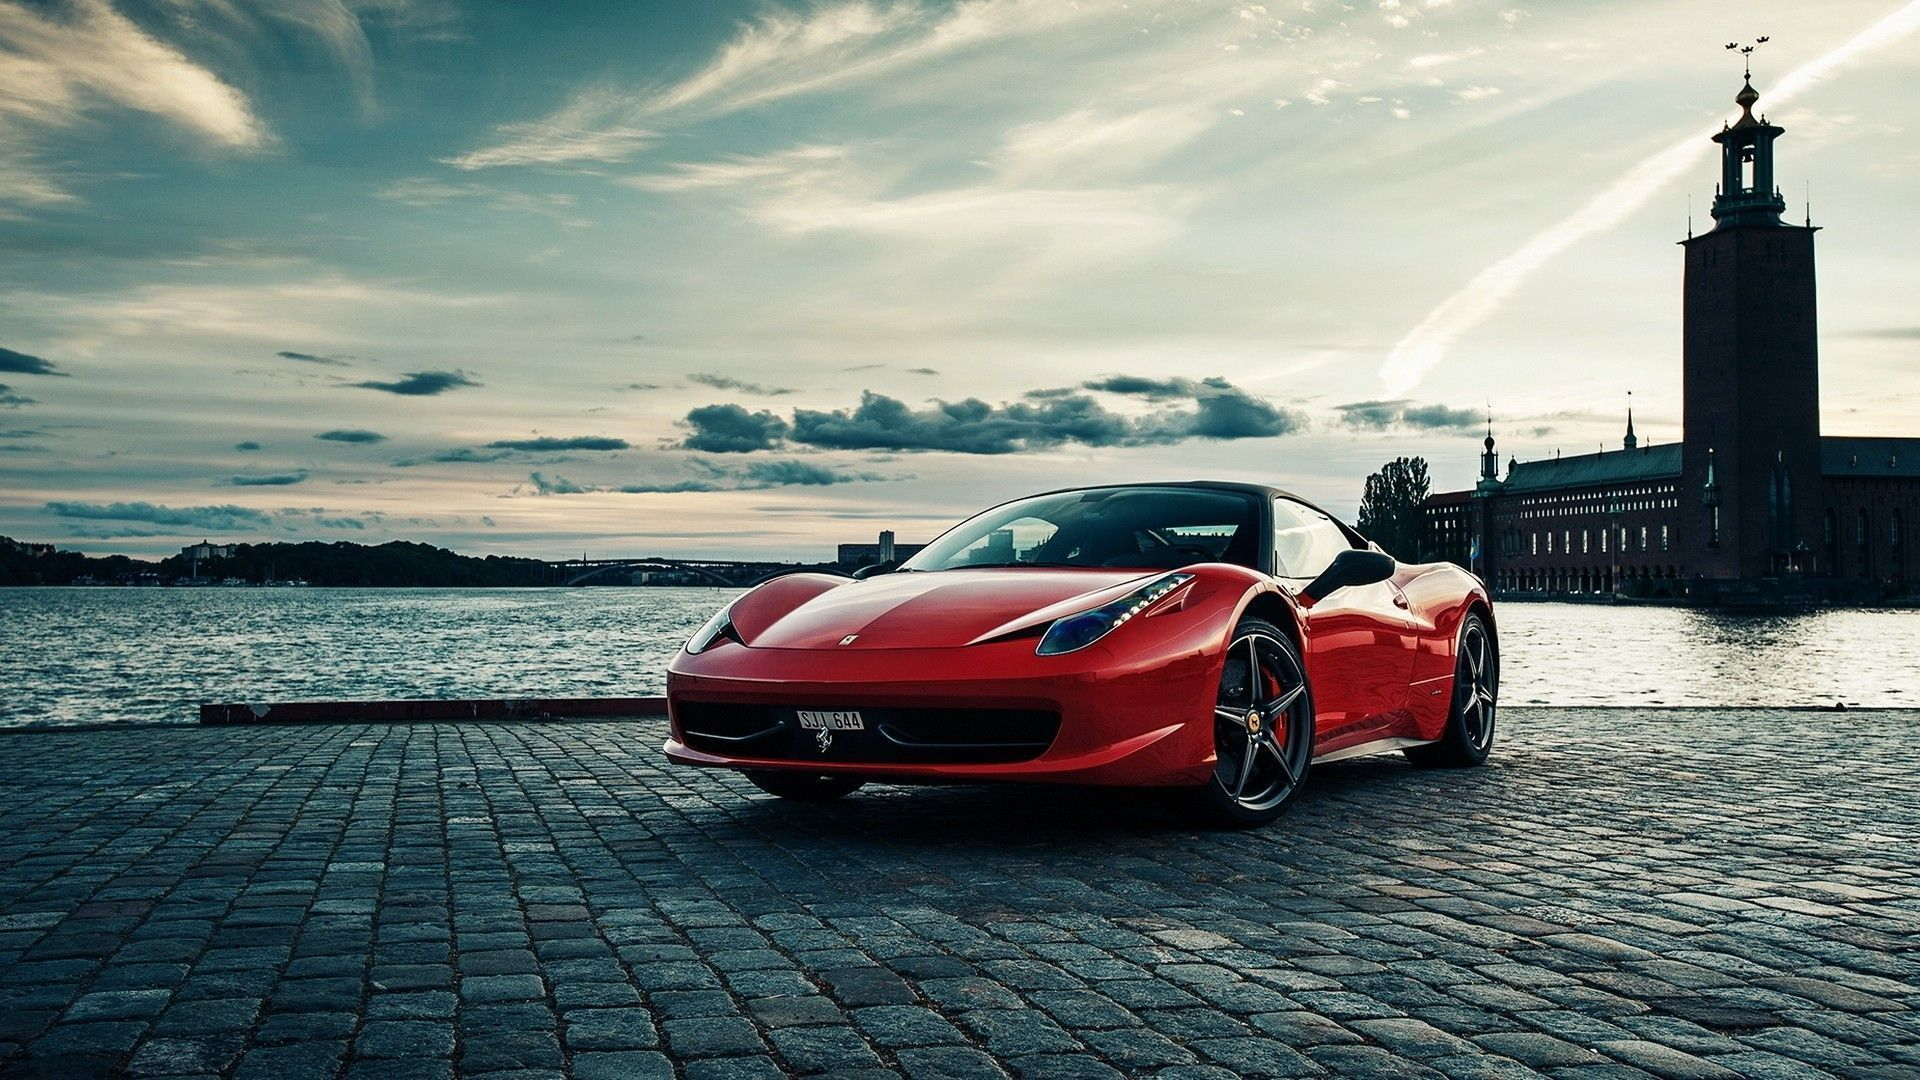 Ferrari Wallpaper 458 Picture Vehicles Wallpapers